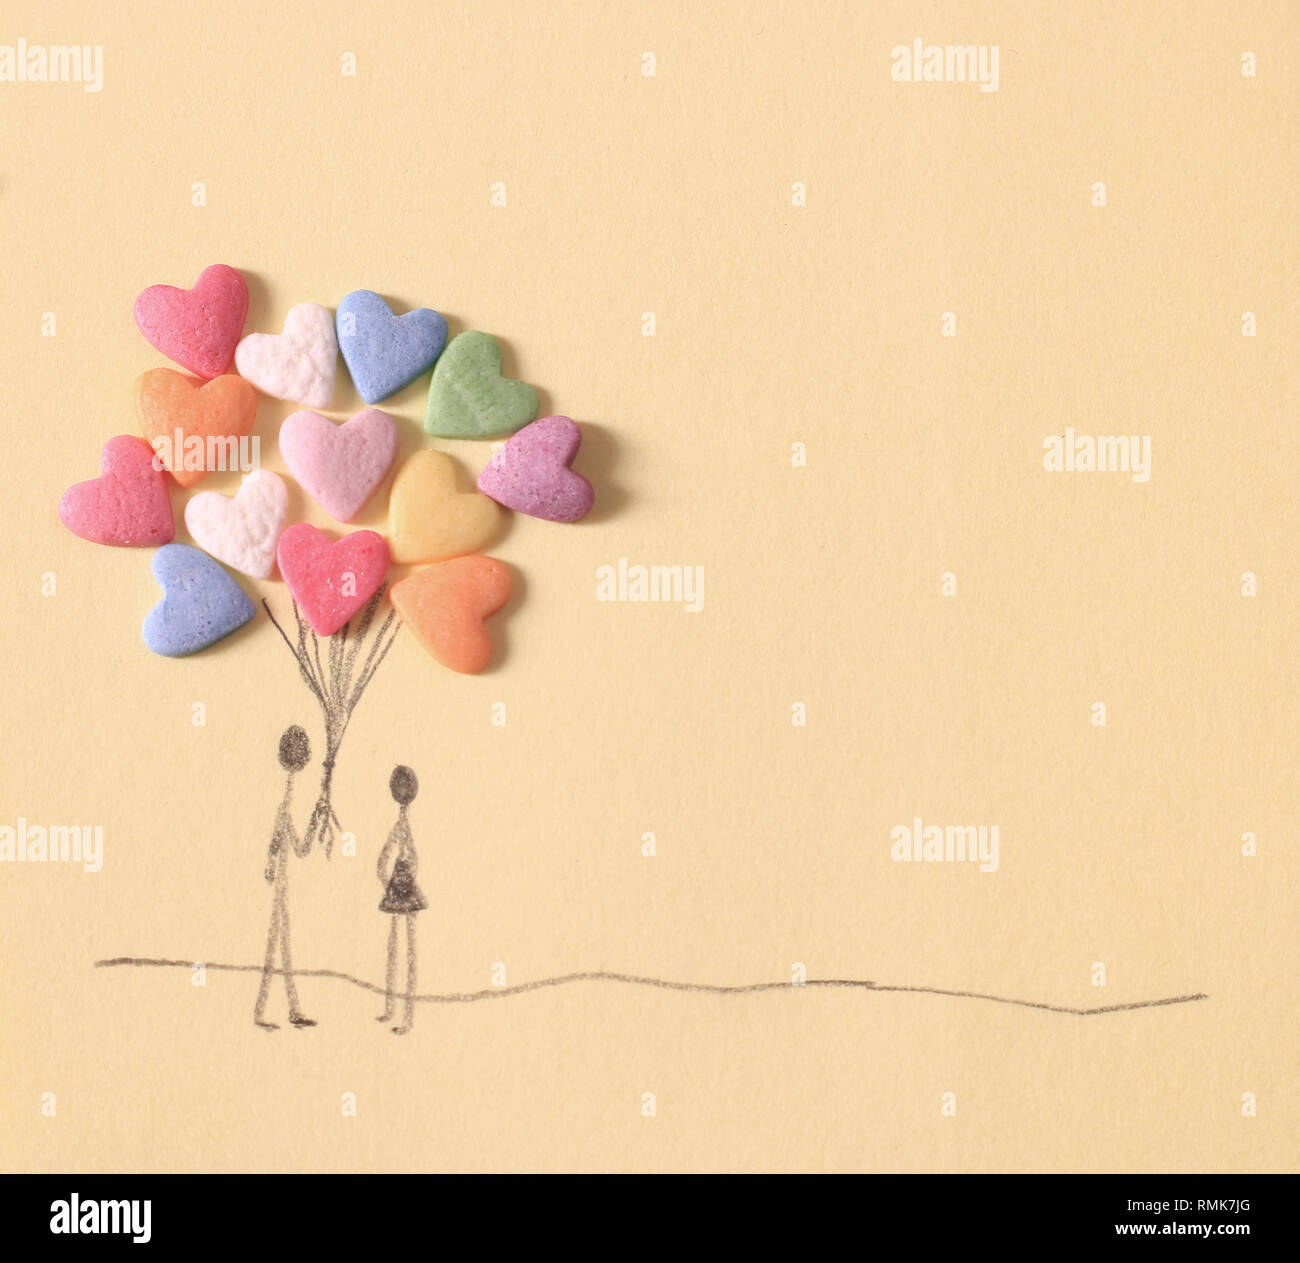 Ballon coeur de bonbons à la main l'illustration pour la carte de Saint-Valentin Photo Stock